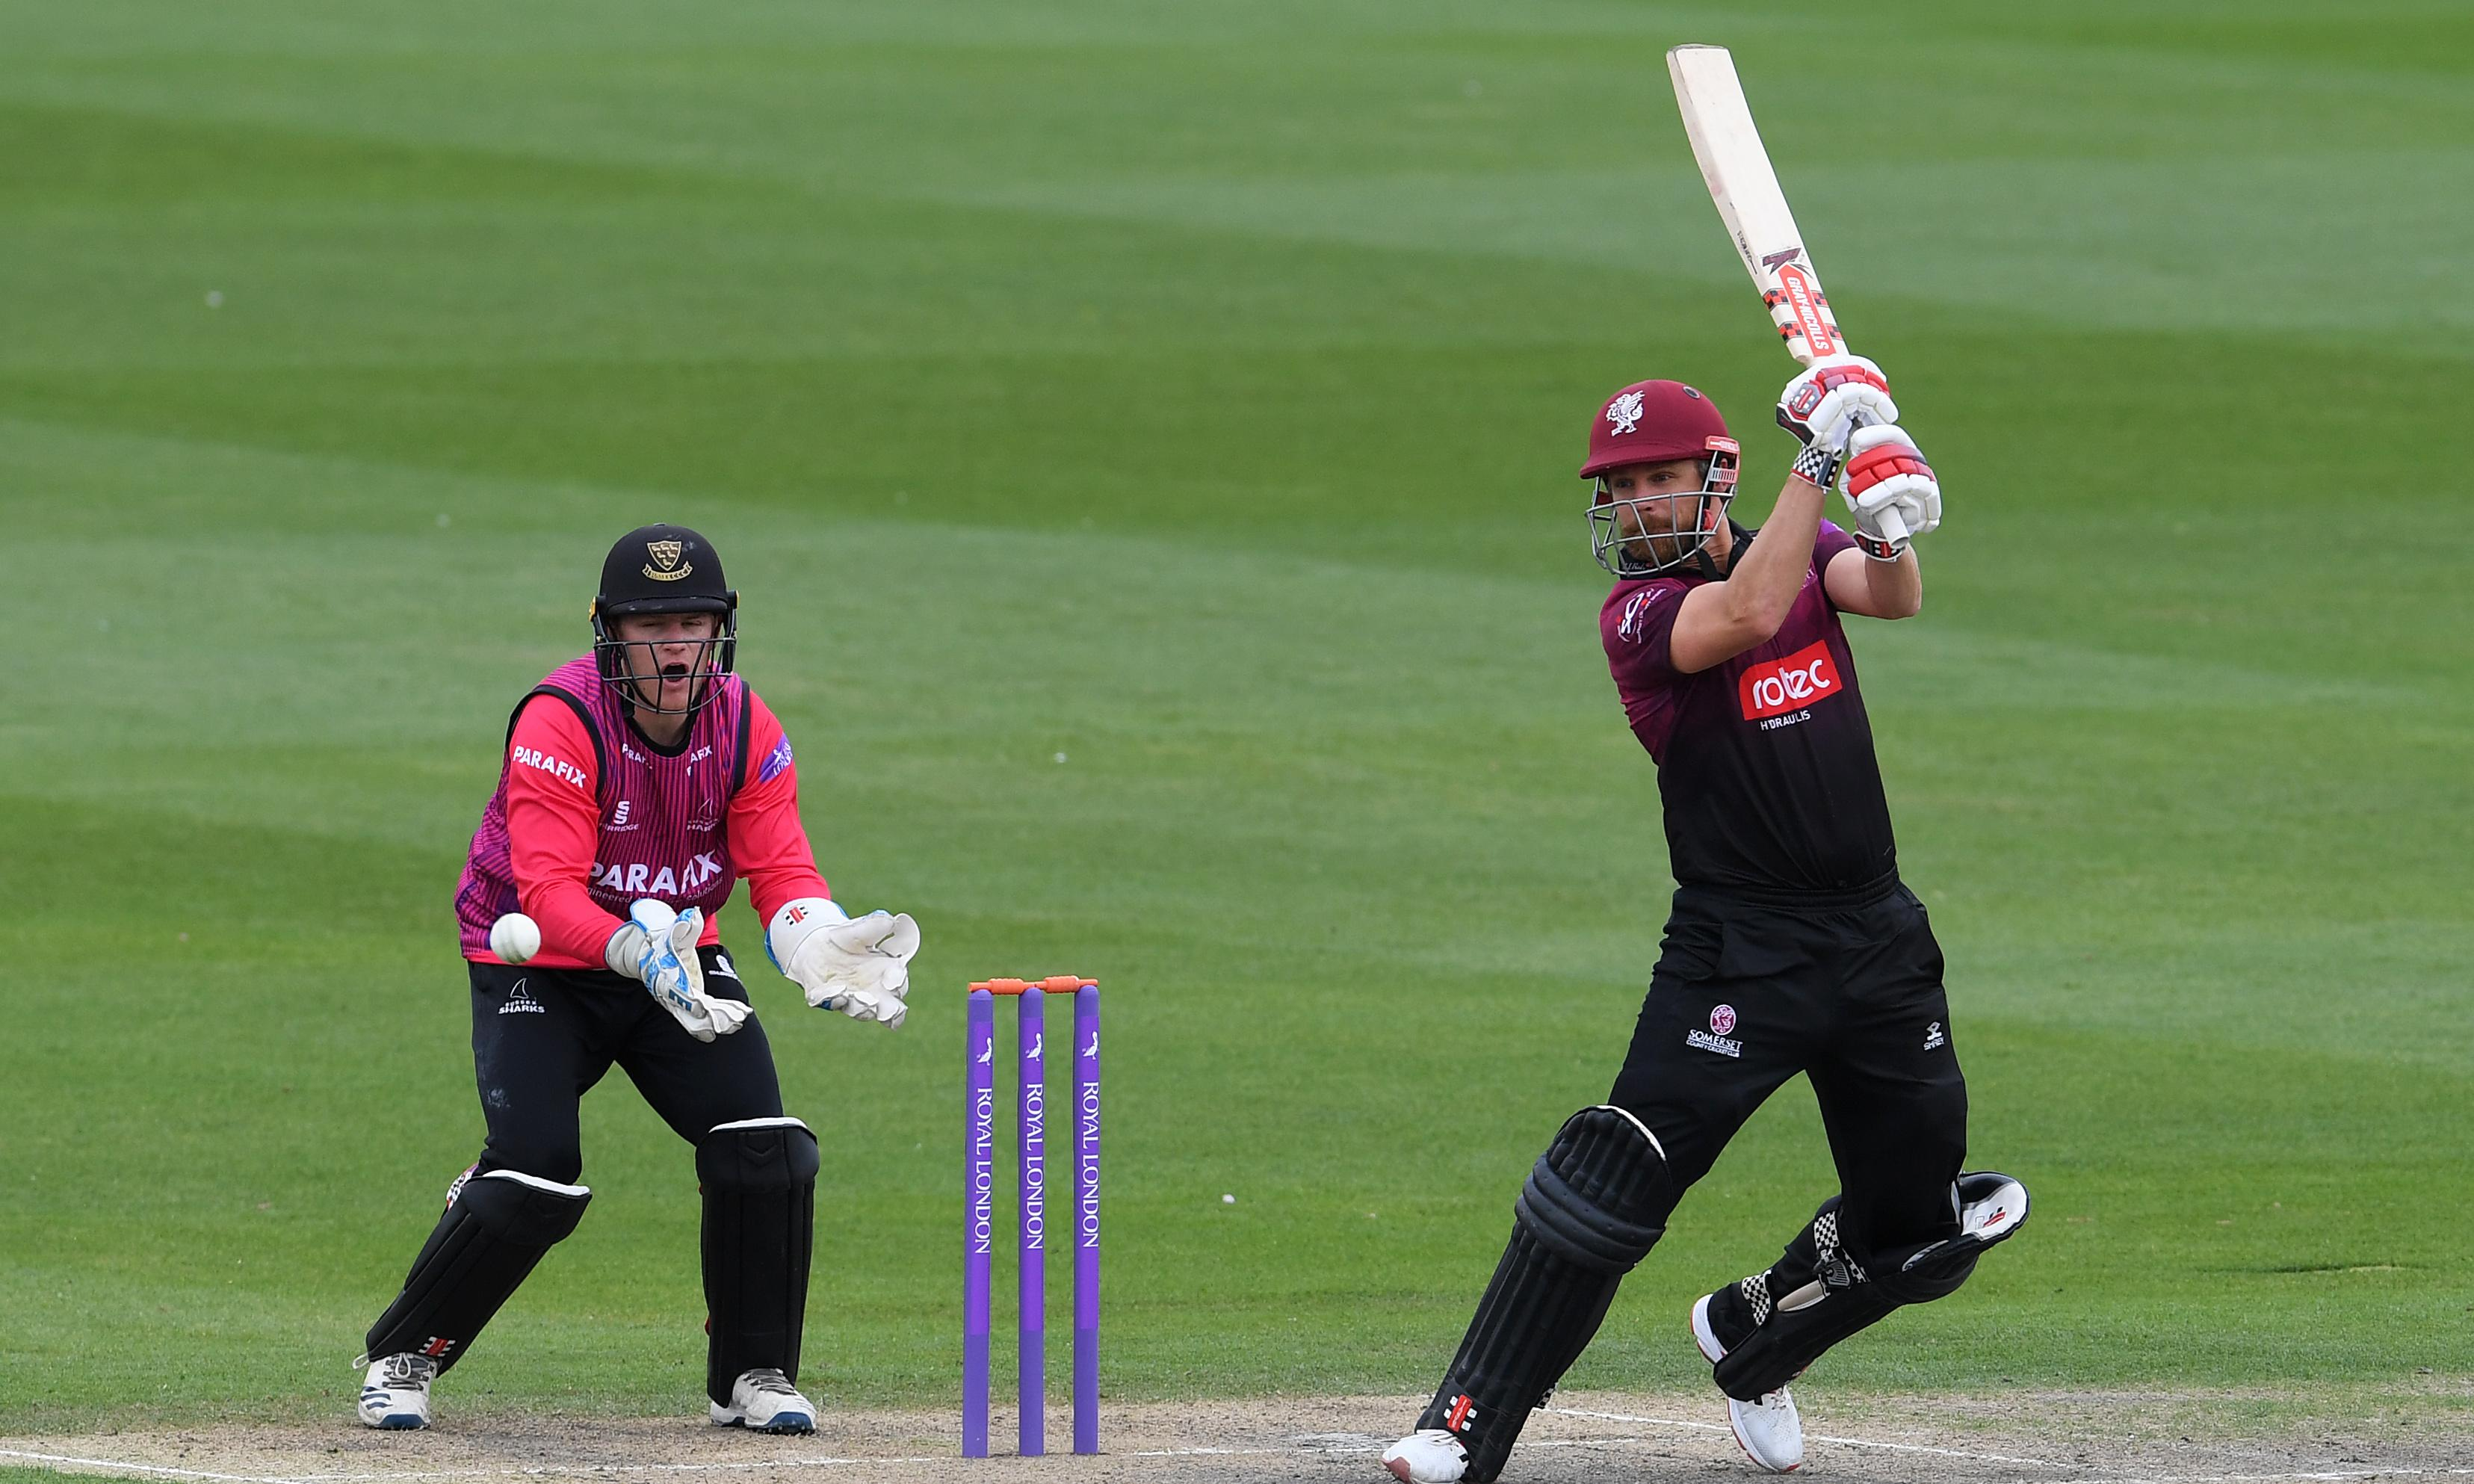 Somerset see off Sussex after rain curtails James Hildreth's big day